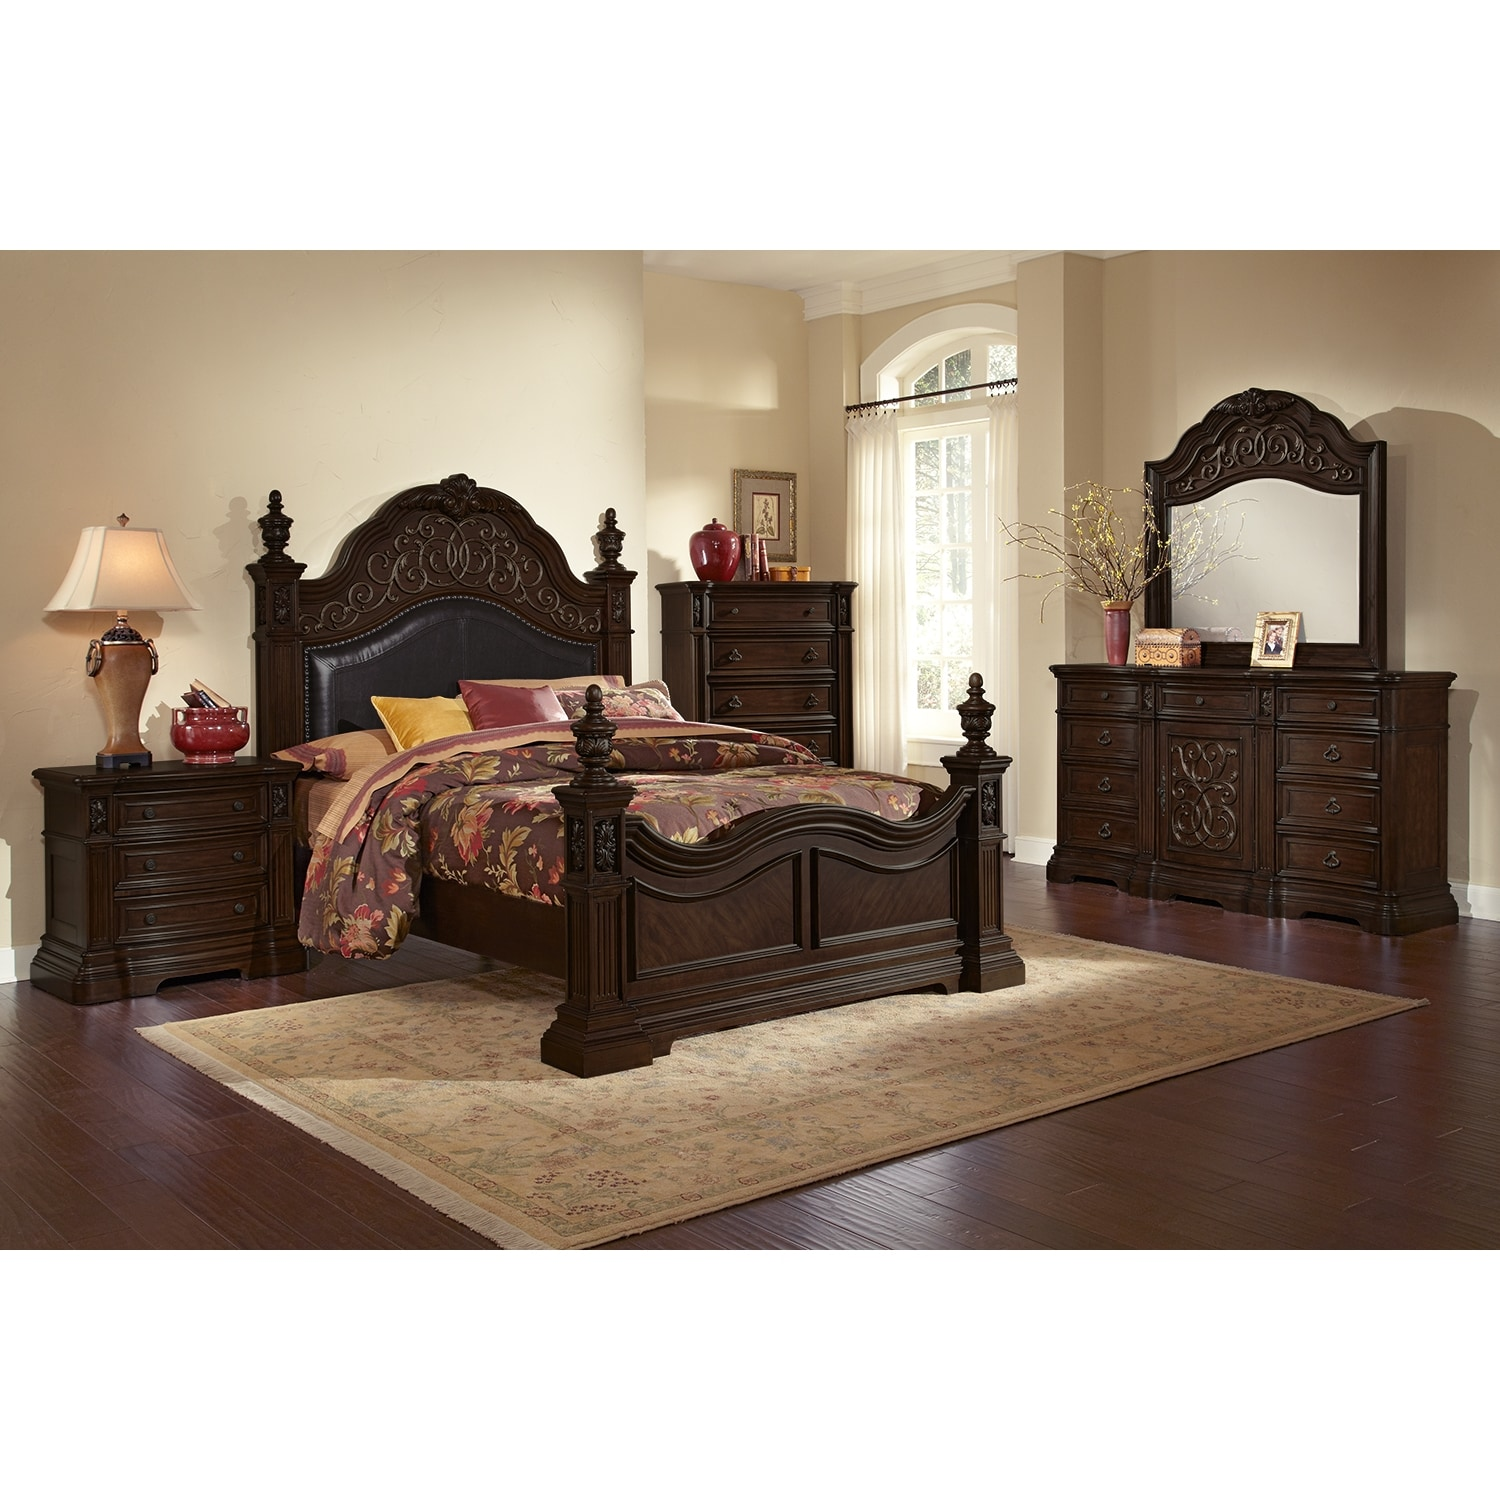 City Furniture Clearance Center: Best Photo Of Value City Bedroom Sets